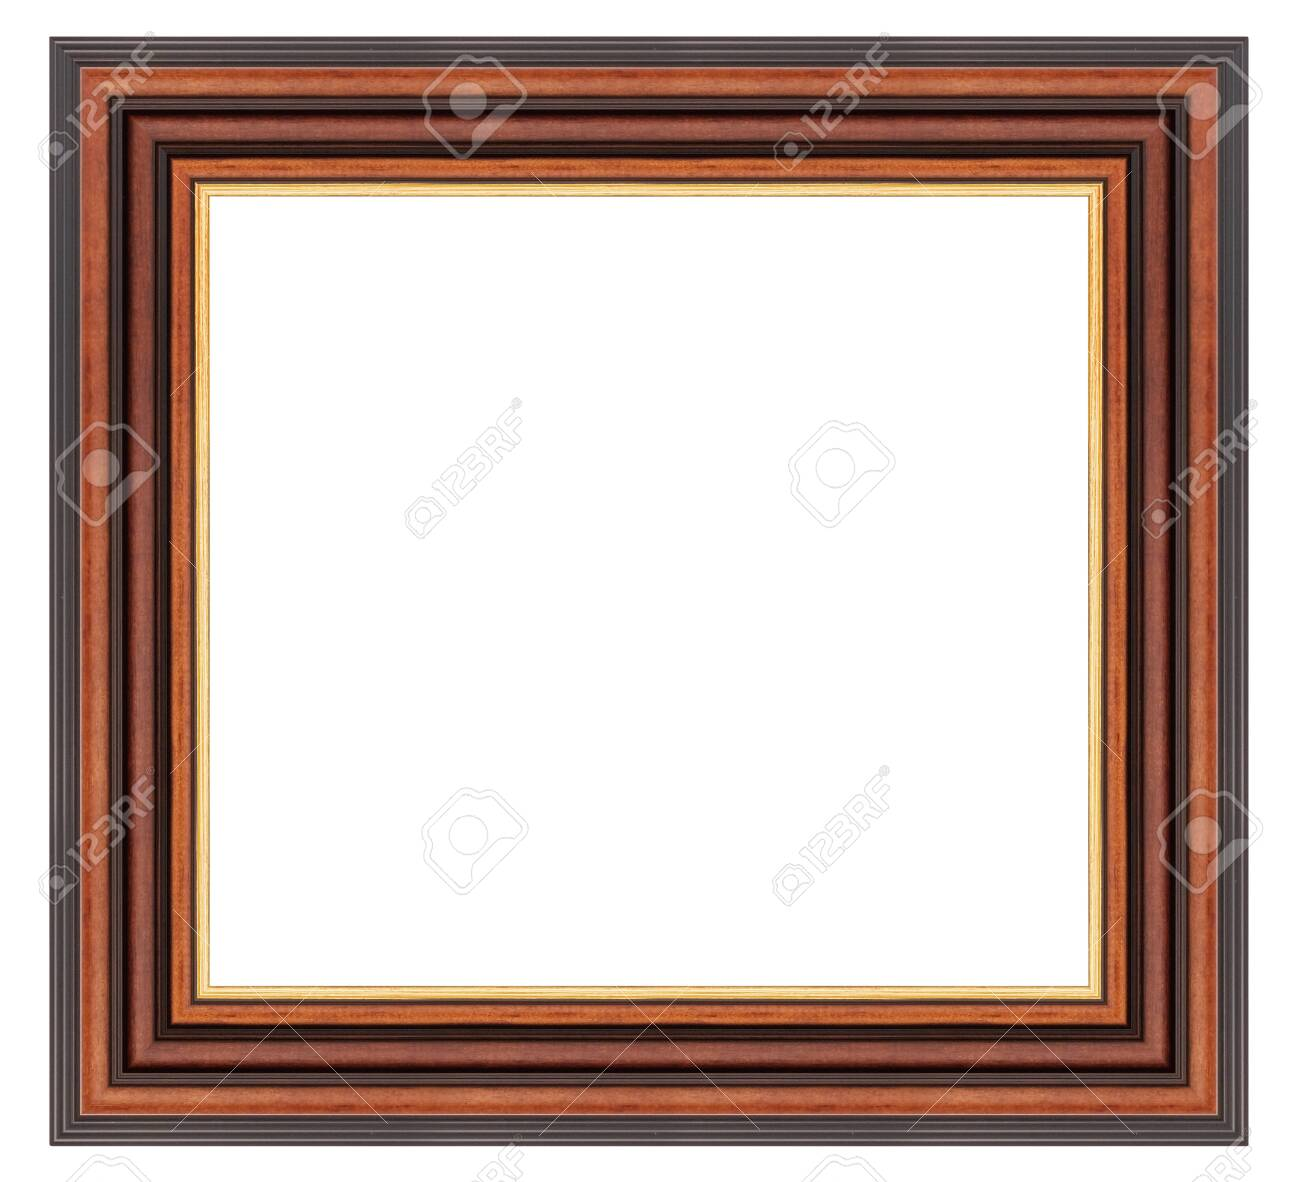 Vintage brown wooden frame on a white - 126782202